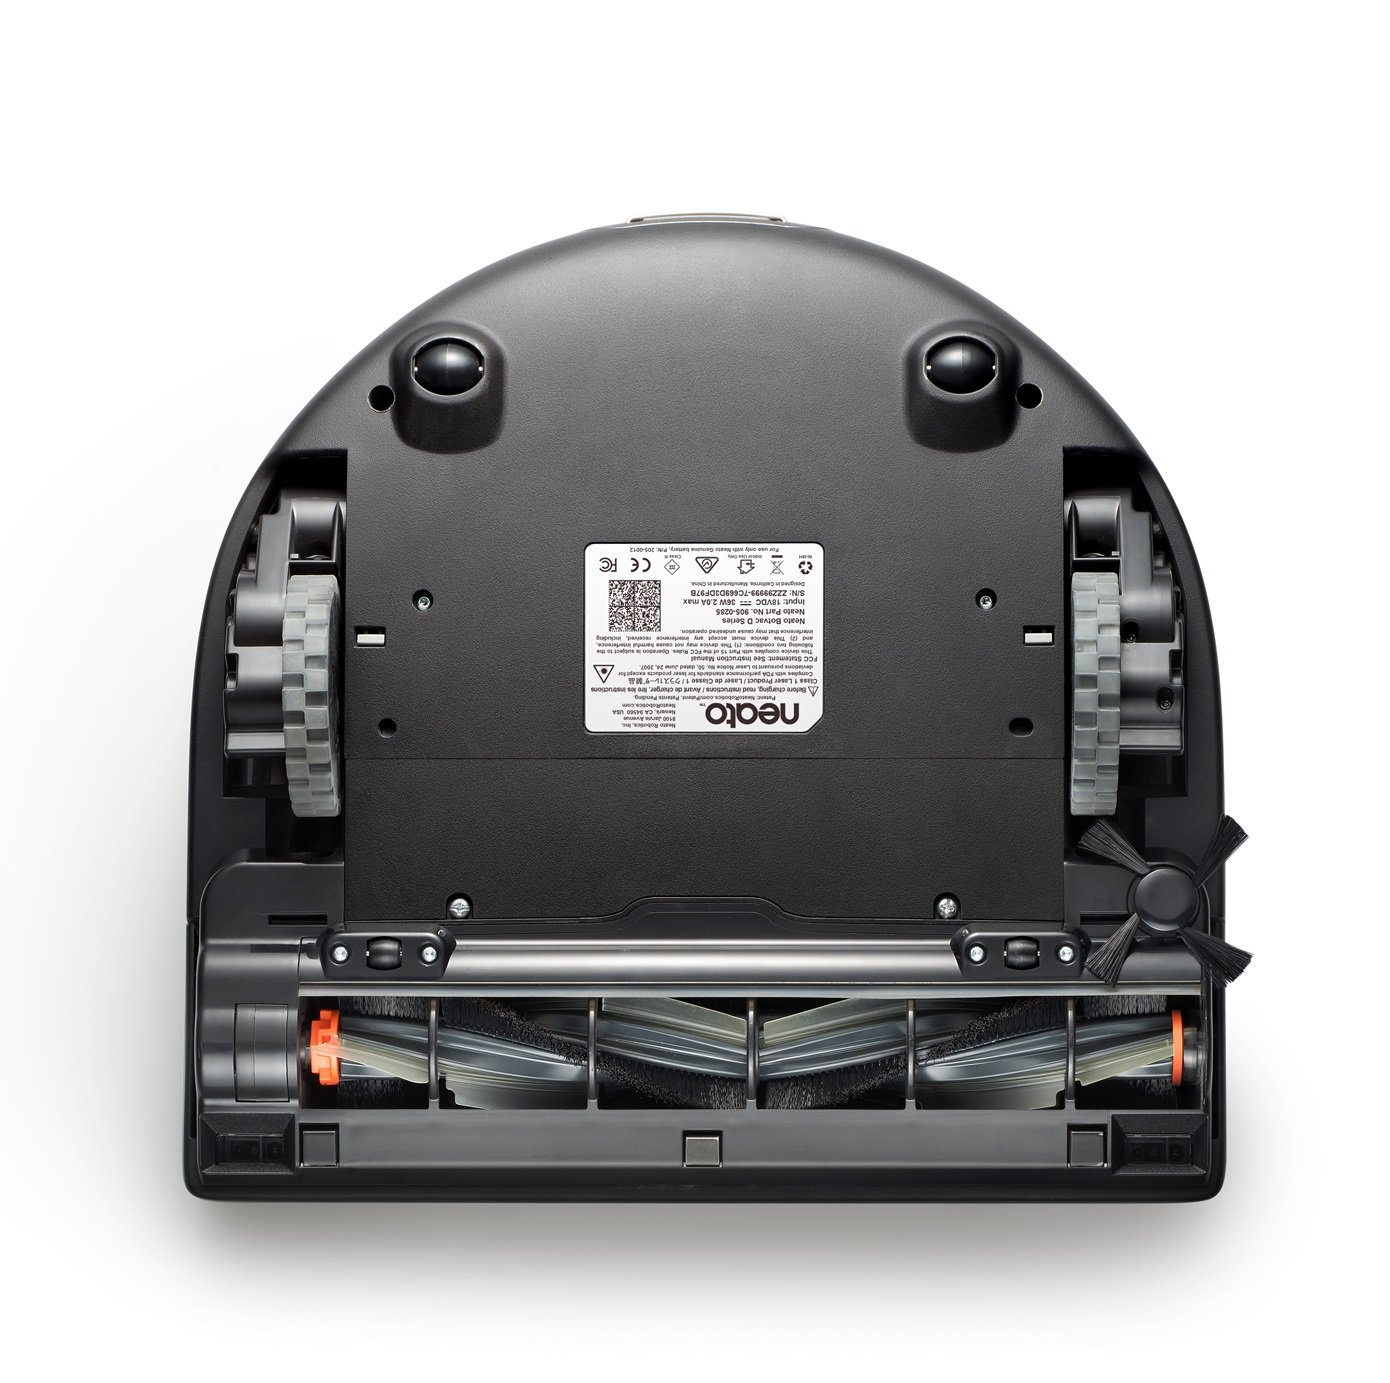 Neato Botvac Connected Wi-Fi Enabled Robot Vacuum, Works with Amazon Alexa by Neato Robotics (Image #5)